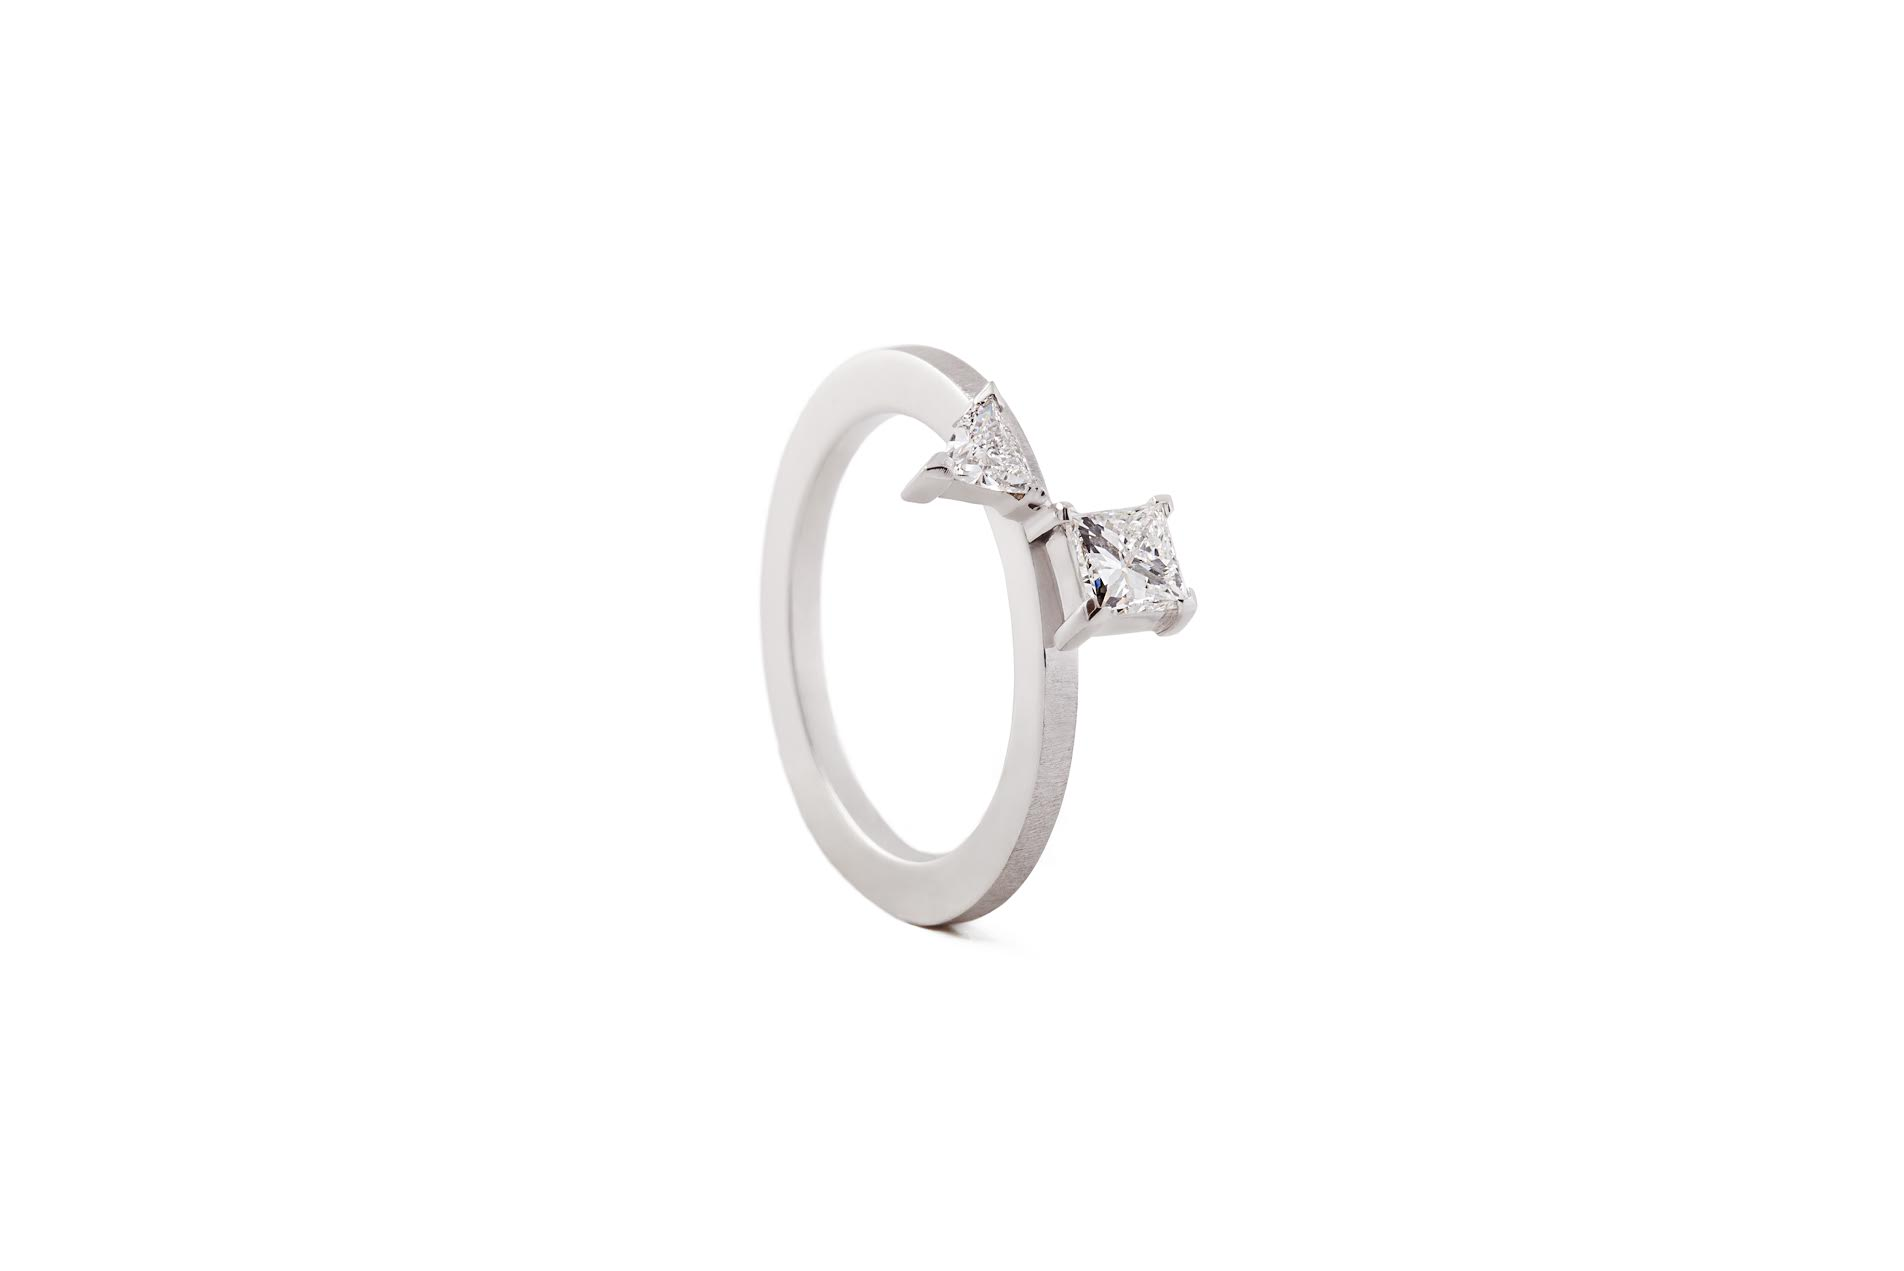 CREST MA RING 18K WHITE GOLD PRINCESS & TRIANGLE DIAMOND 0.53CT